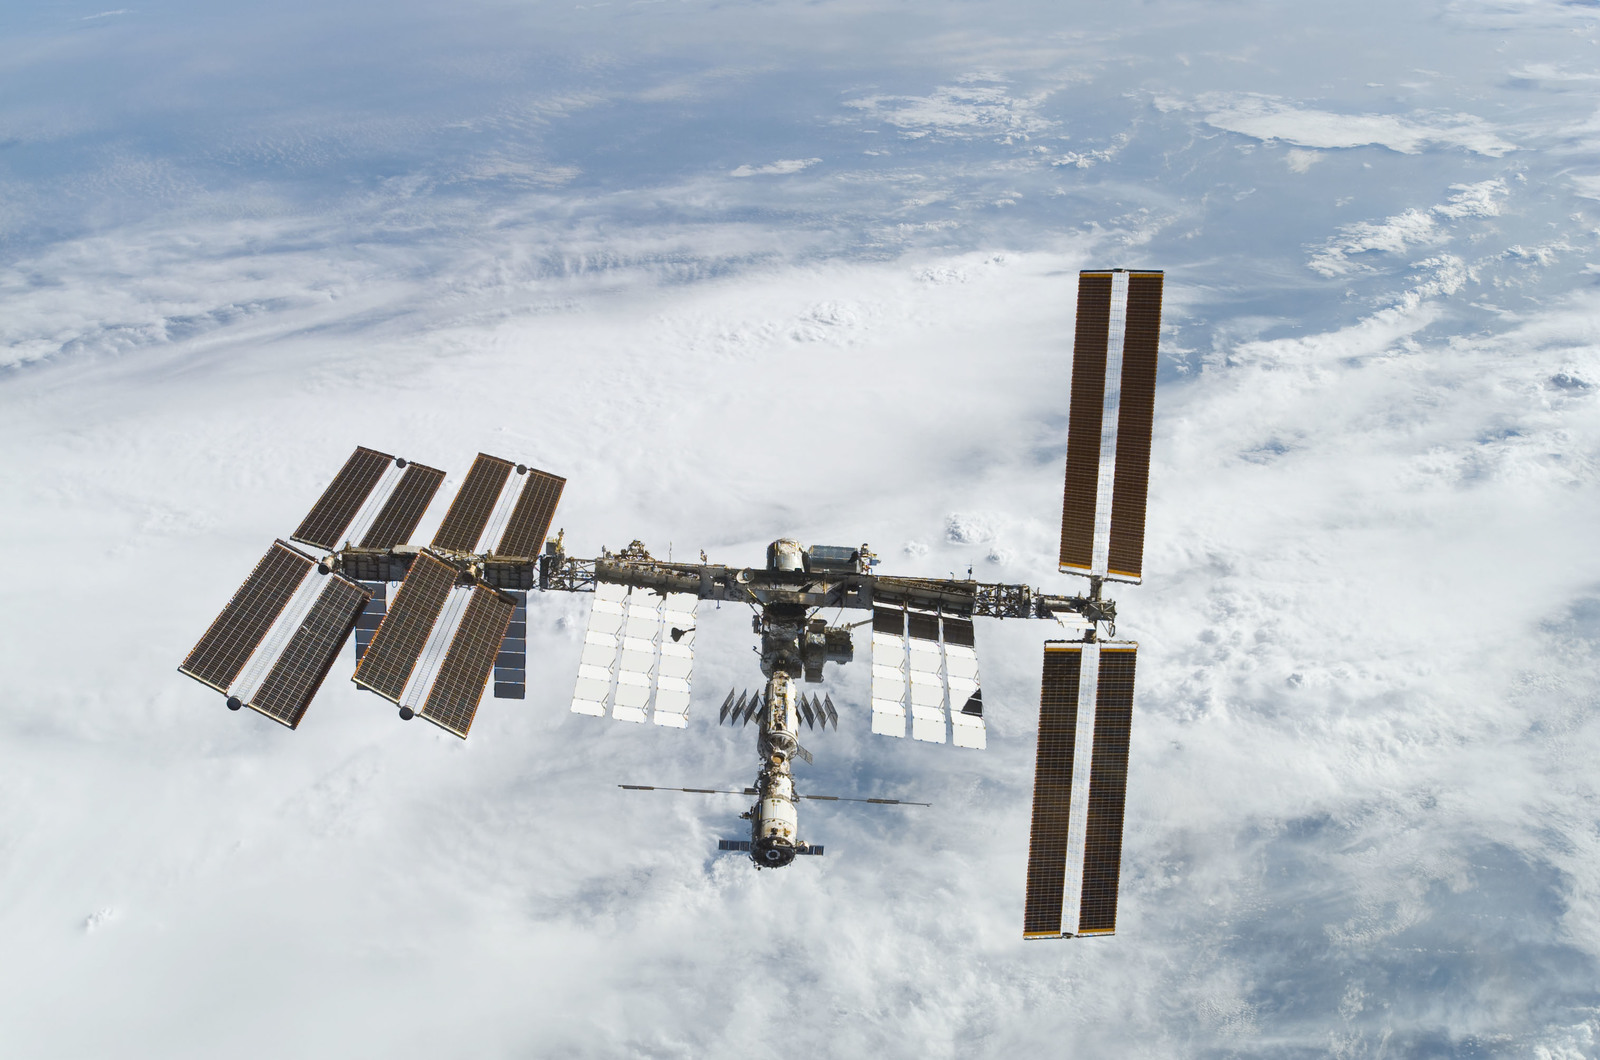 S122E010933 - STS-122 - View of ISS after STS-122 Undocking